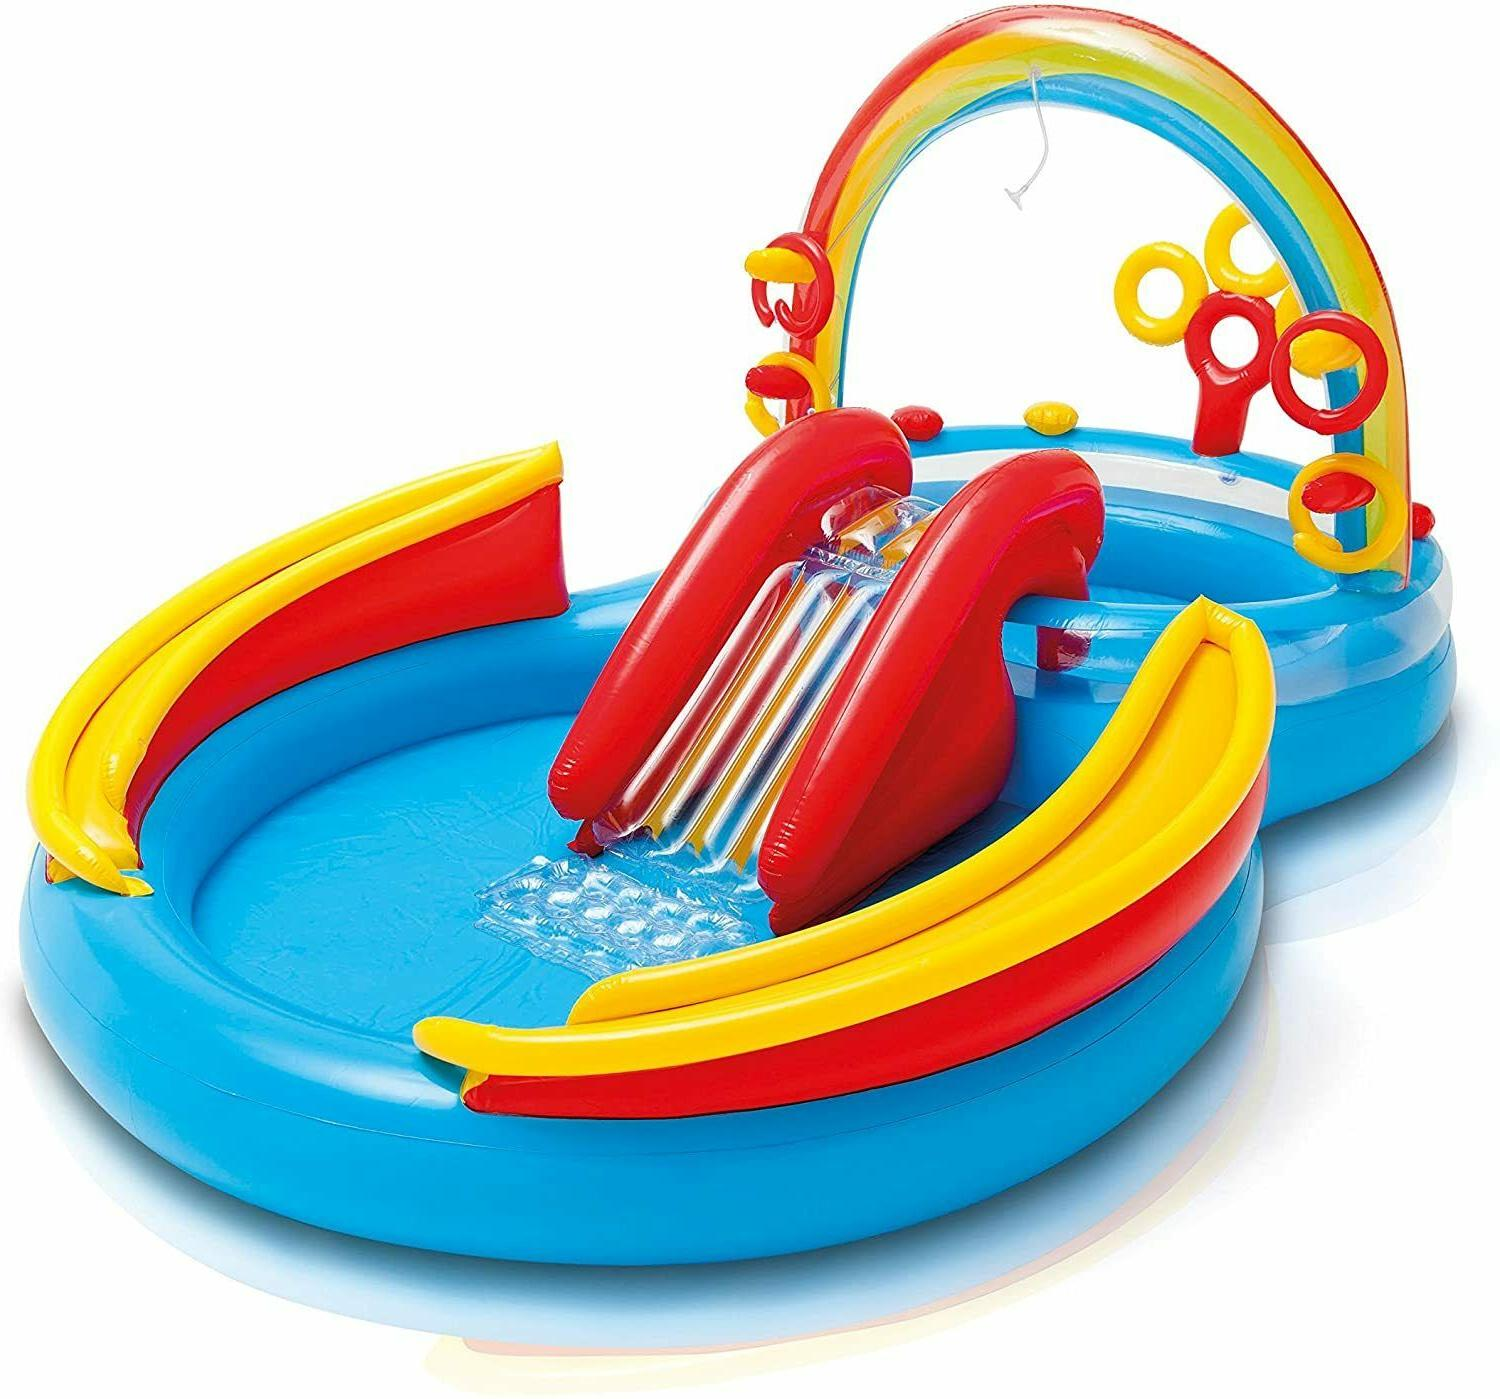 Intex Play Center Kiddie inflatable toy FREE DAY*